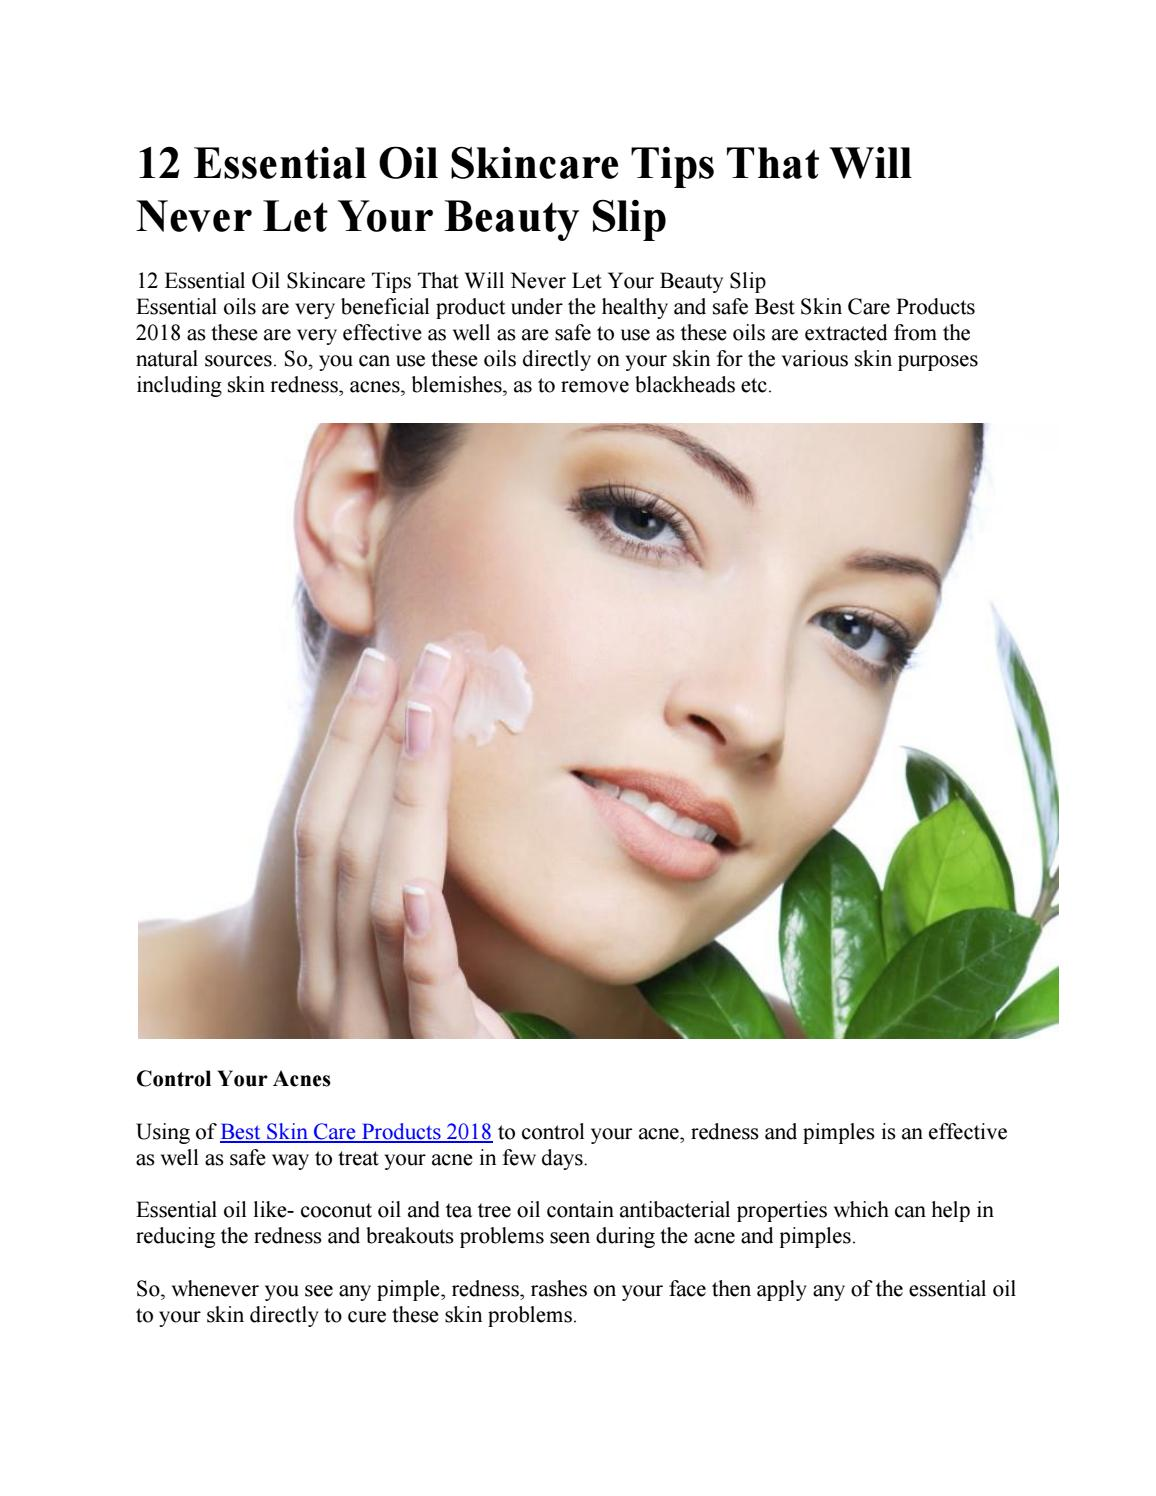 12 Essential Oil Skincare Tips That Will Never Let Your Beauty Slip By Drozex1 Issuu